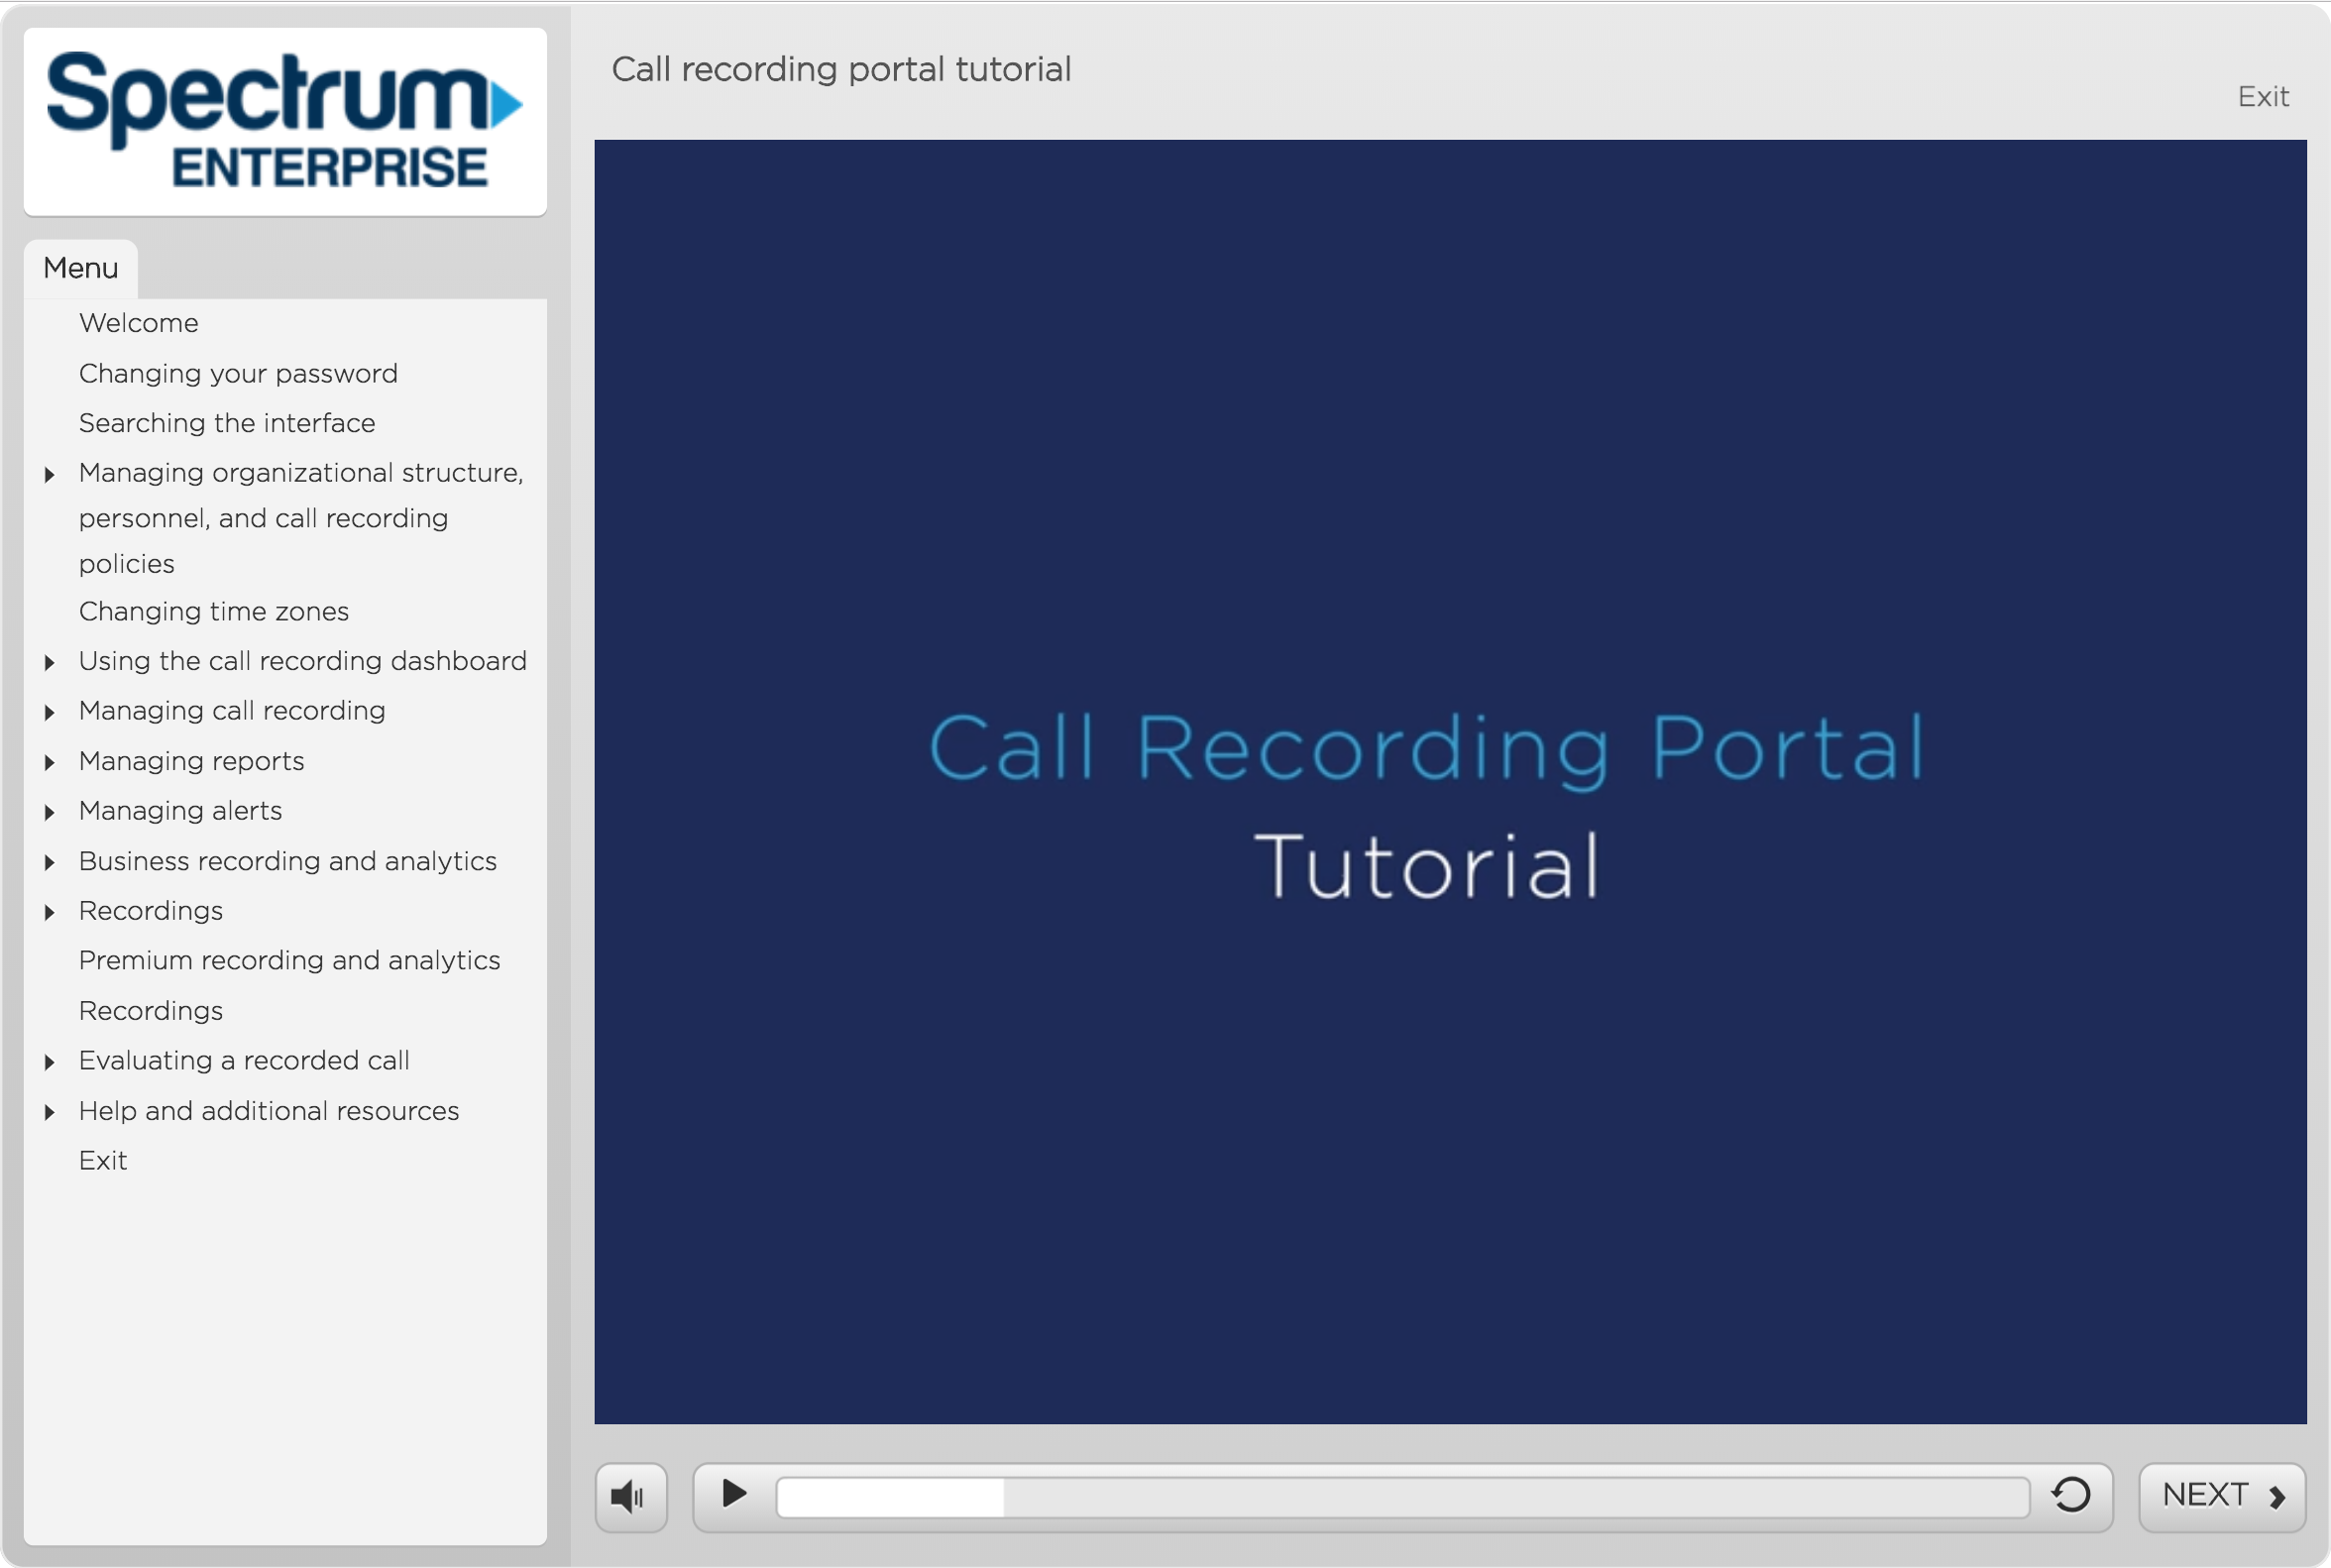 Call Recording Portal Tutorial